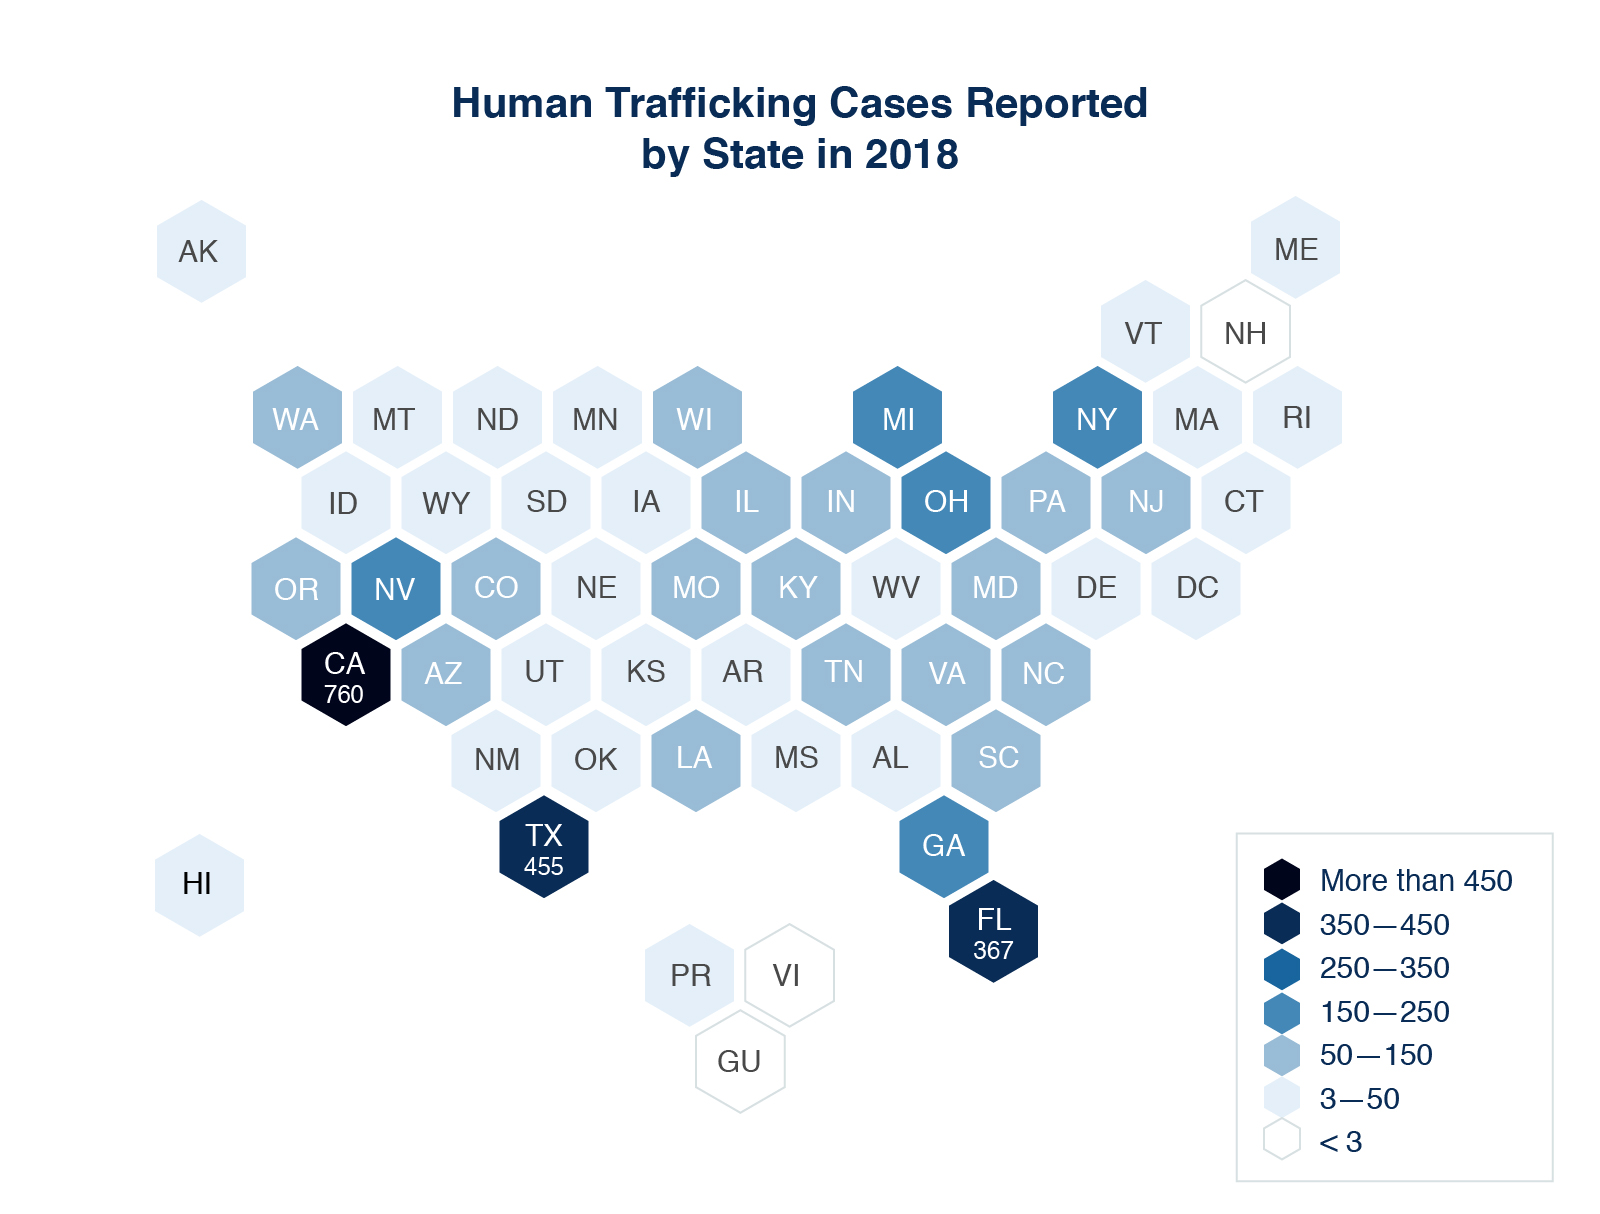 Infographic on human trafficking cases reported by state in 2018.